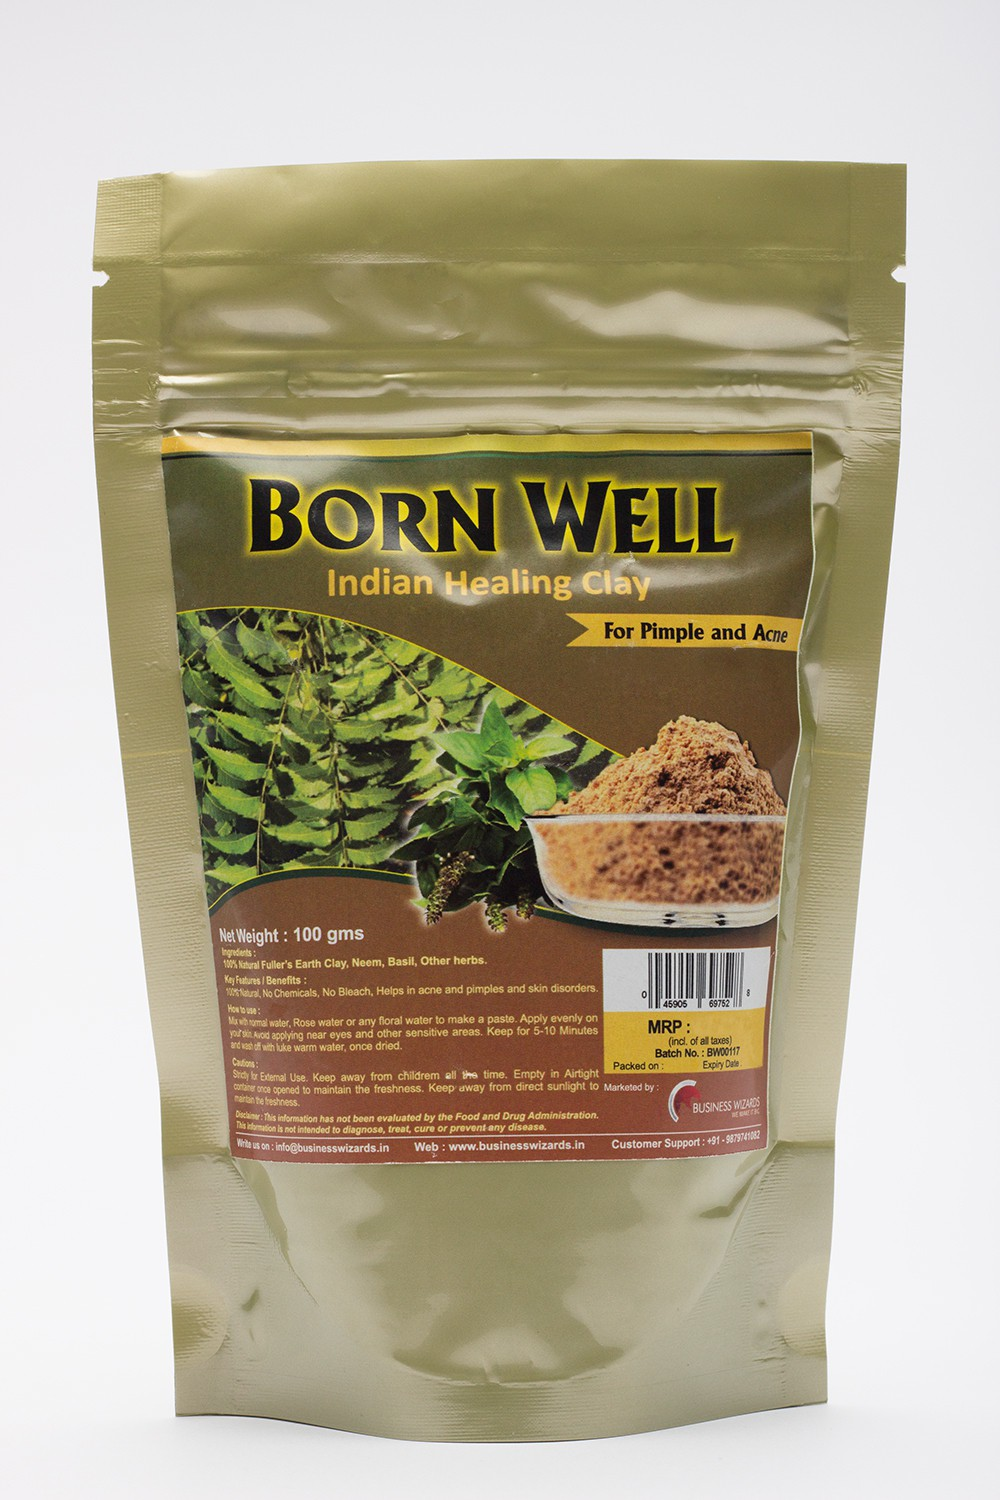 Born well Indian healing clay for Pimple & Acne with Neem & Basil Powder(100 g)